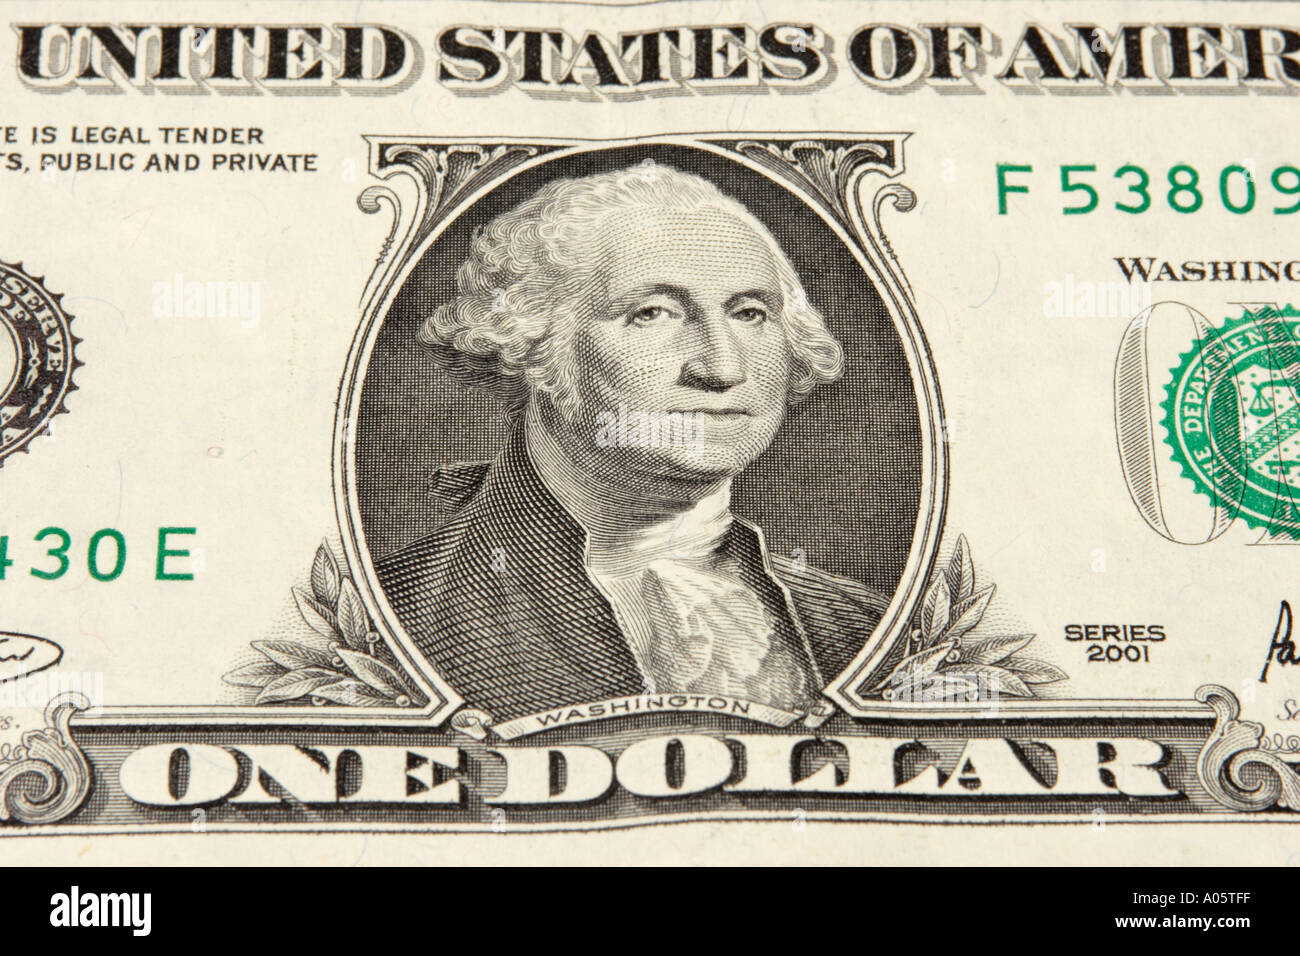 Money Usa American Currency Face Of George Washington On